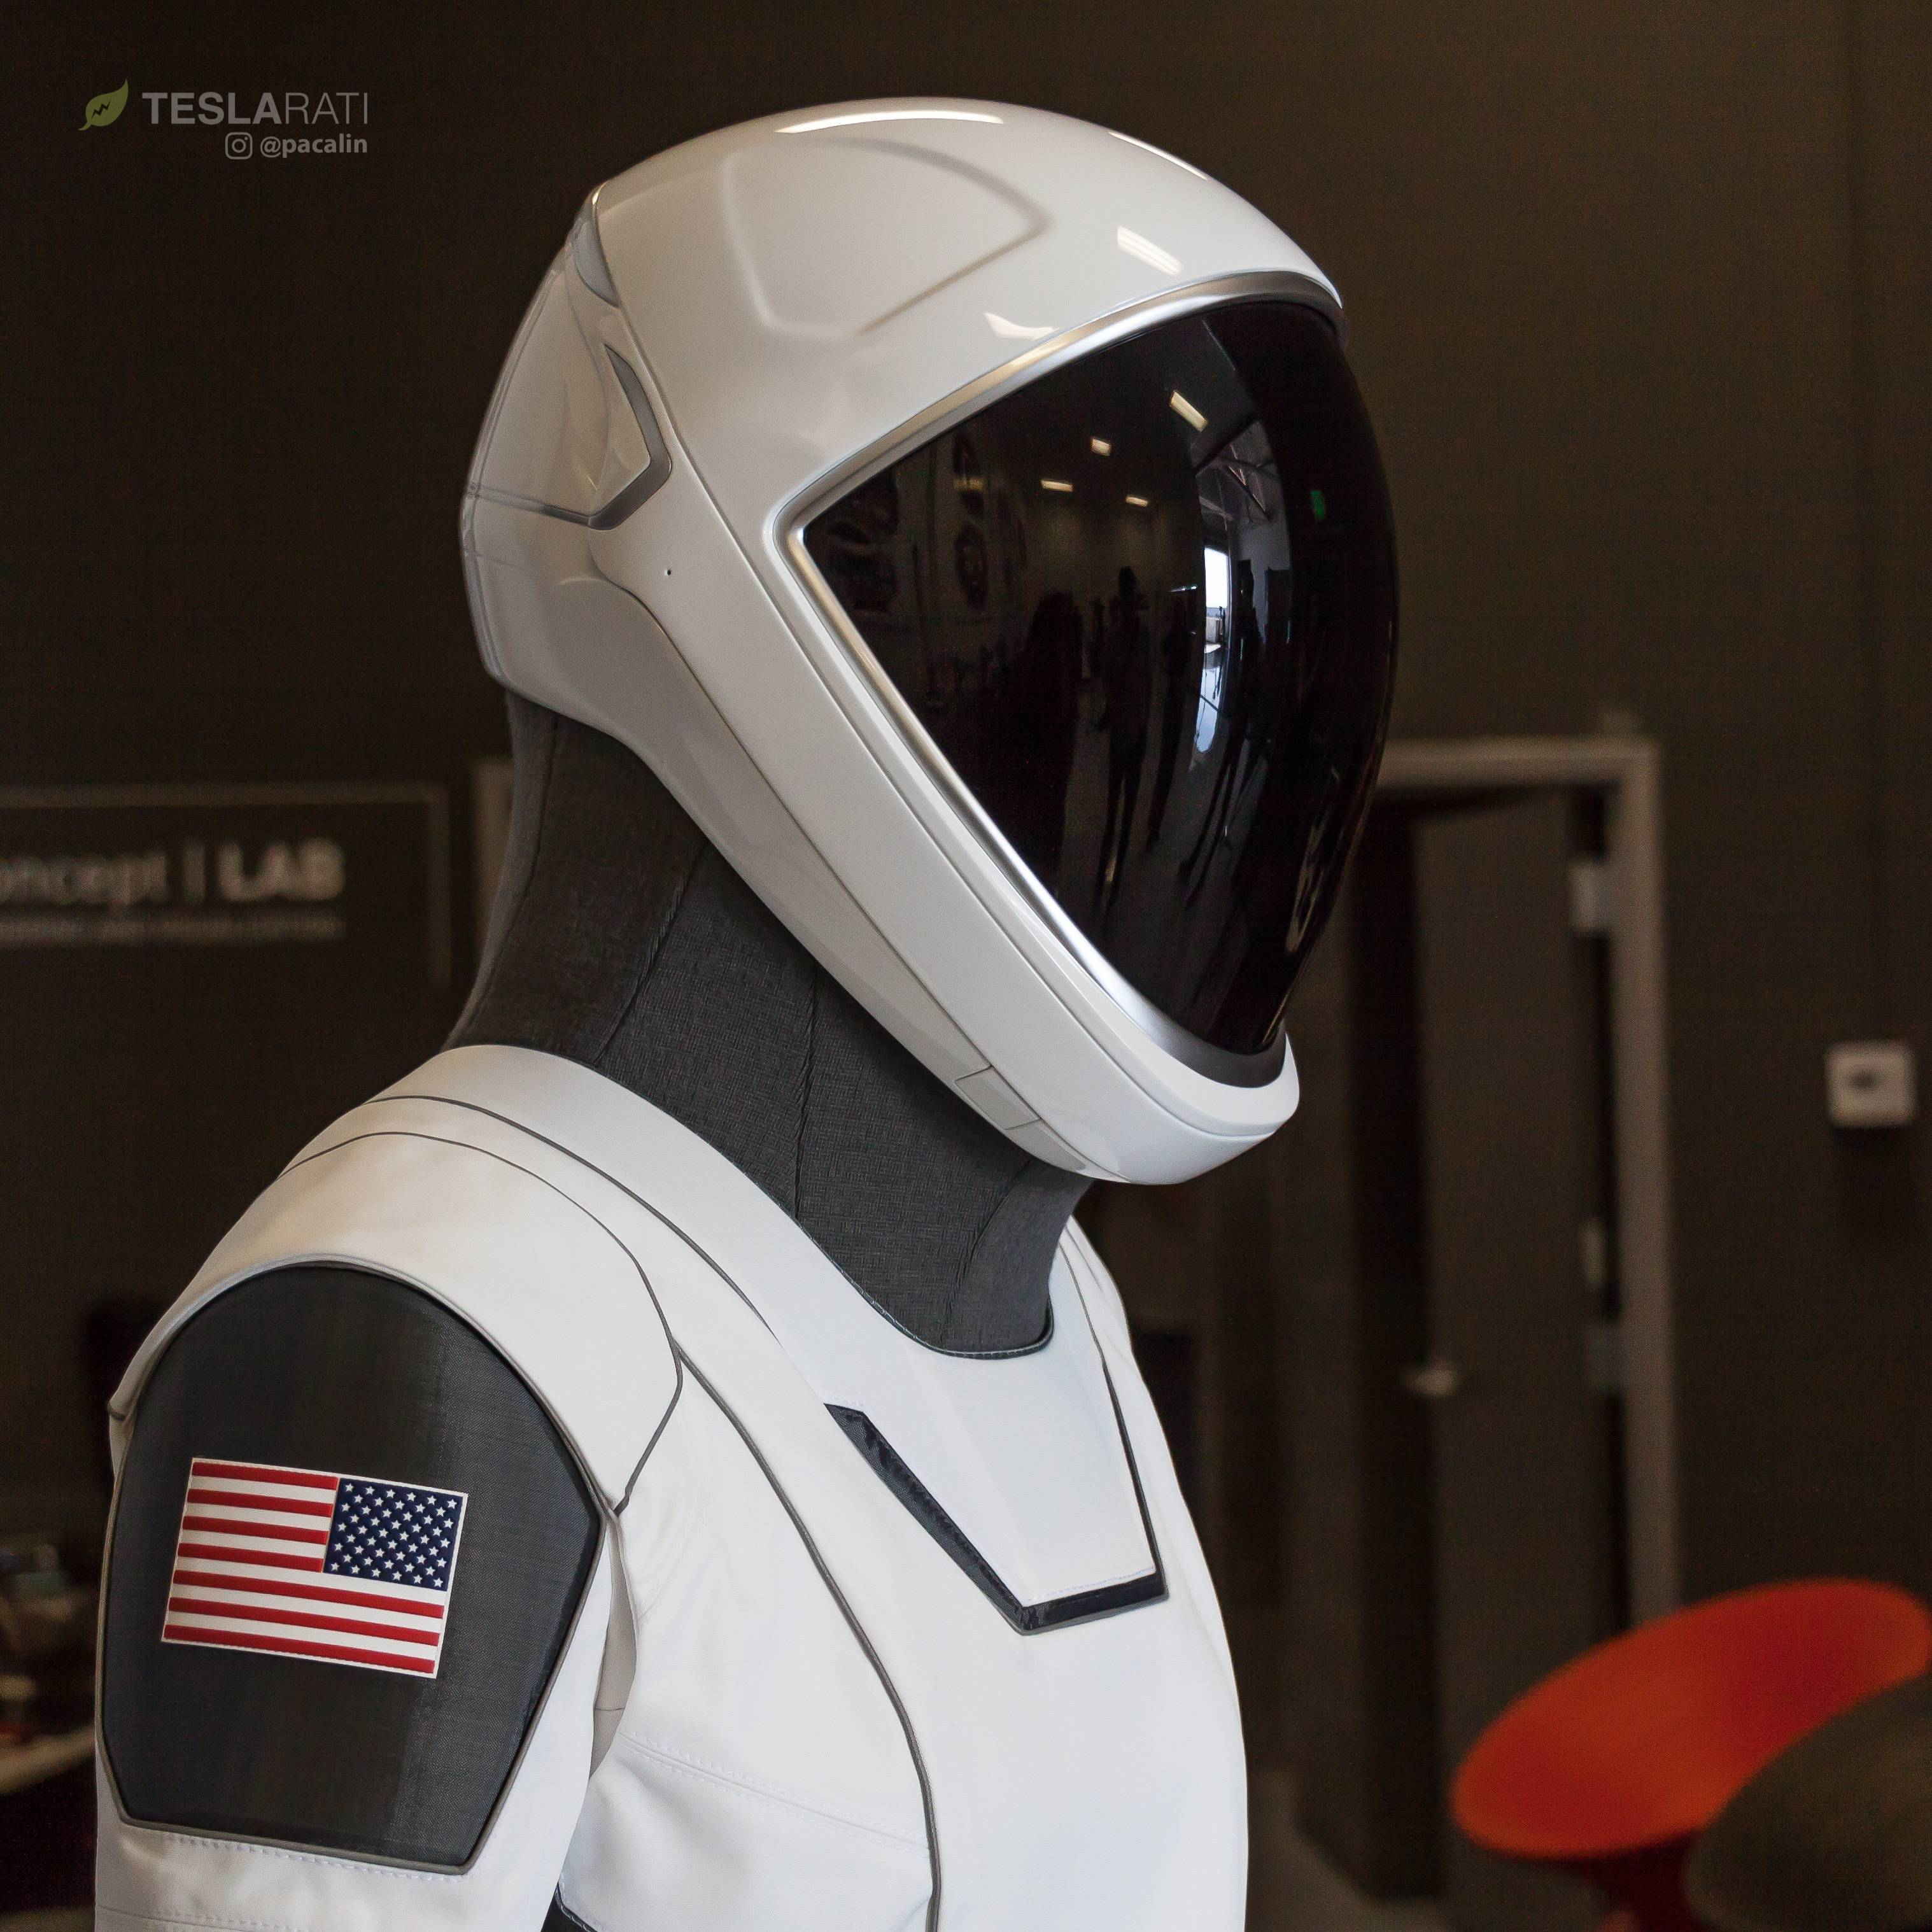 Crew Dragon spacesuit 081318 (SpaceX) 3